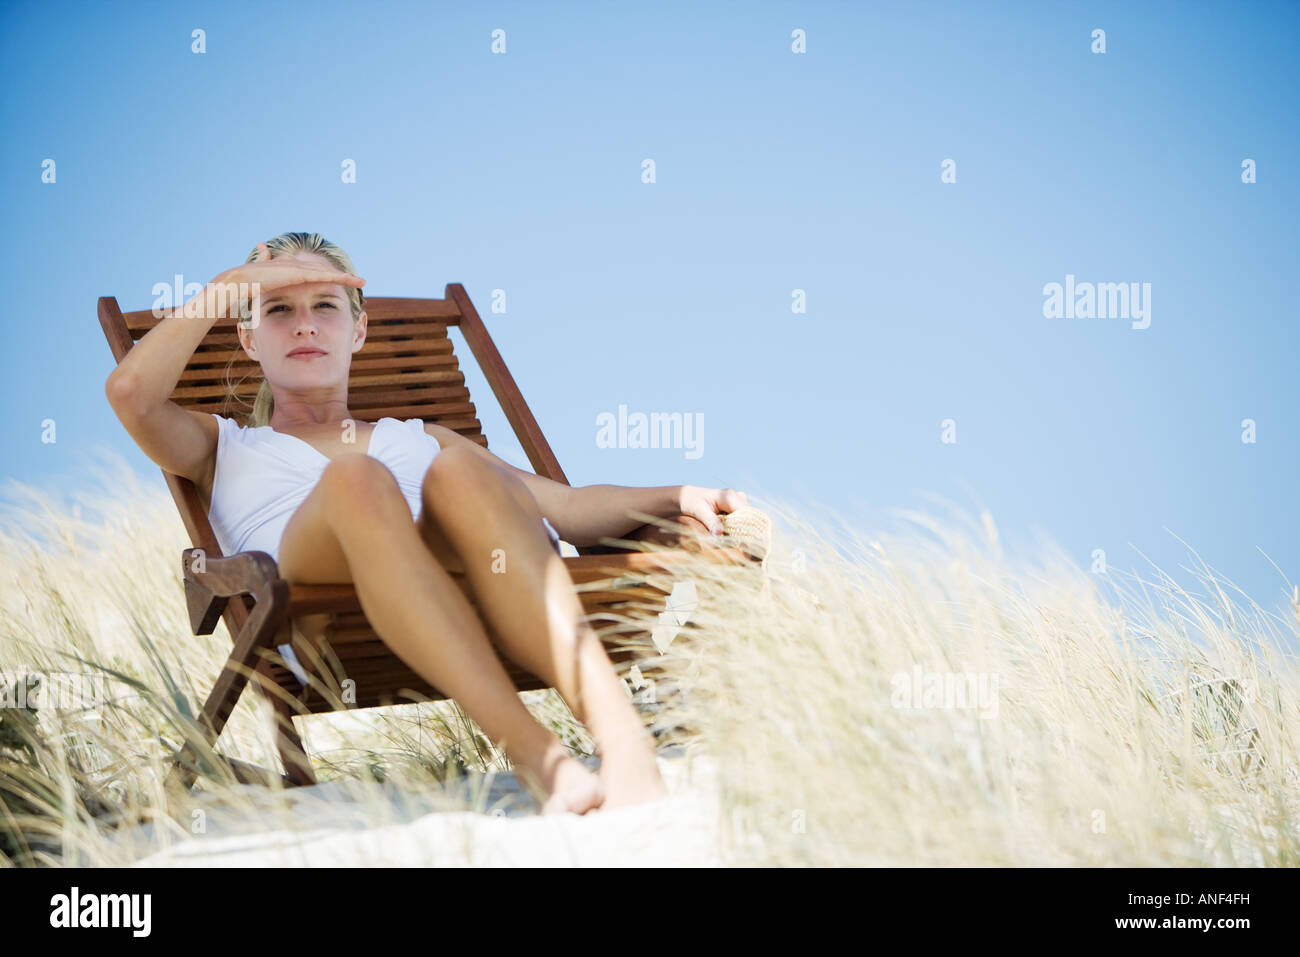 Young woman sitting in deckchair on beach, shading eyes - Stock Image